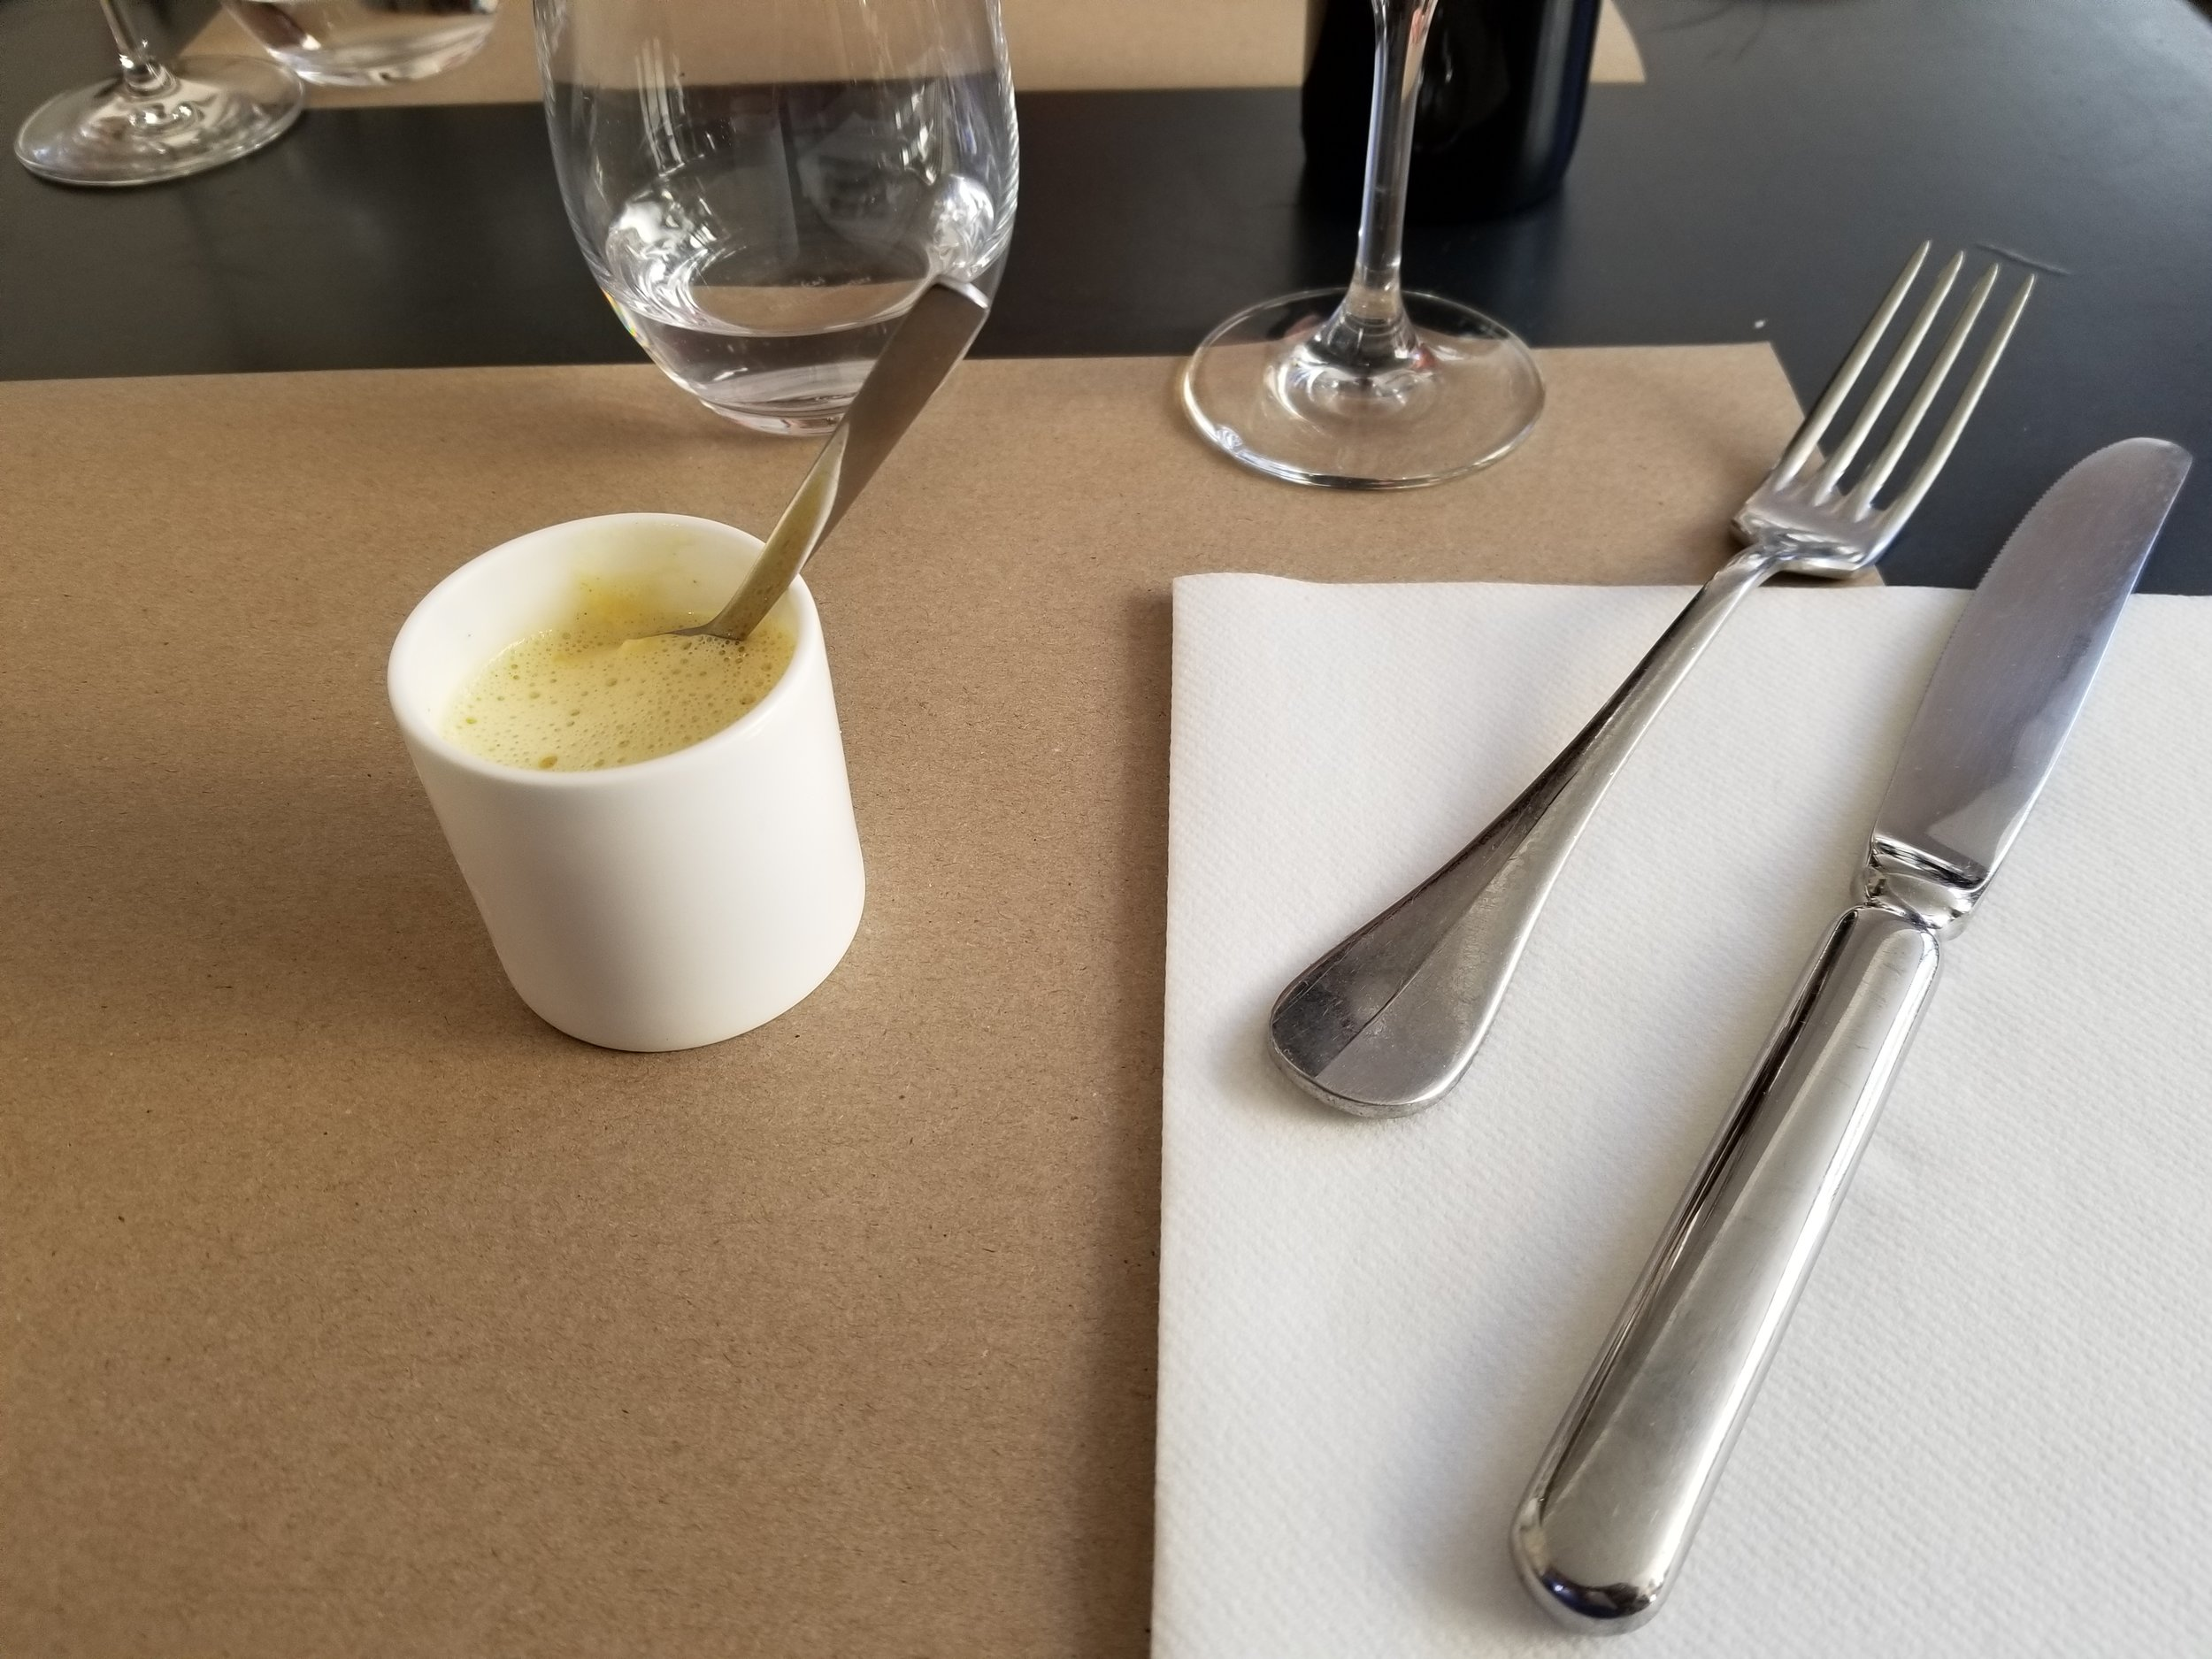 Shortly after we were seated, a server brought us an amuse bouche from the chef, a cup of Royale de Lotte with saffron emulsion